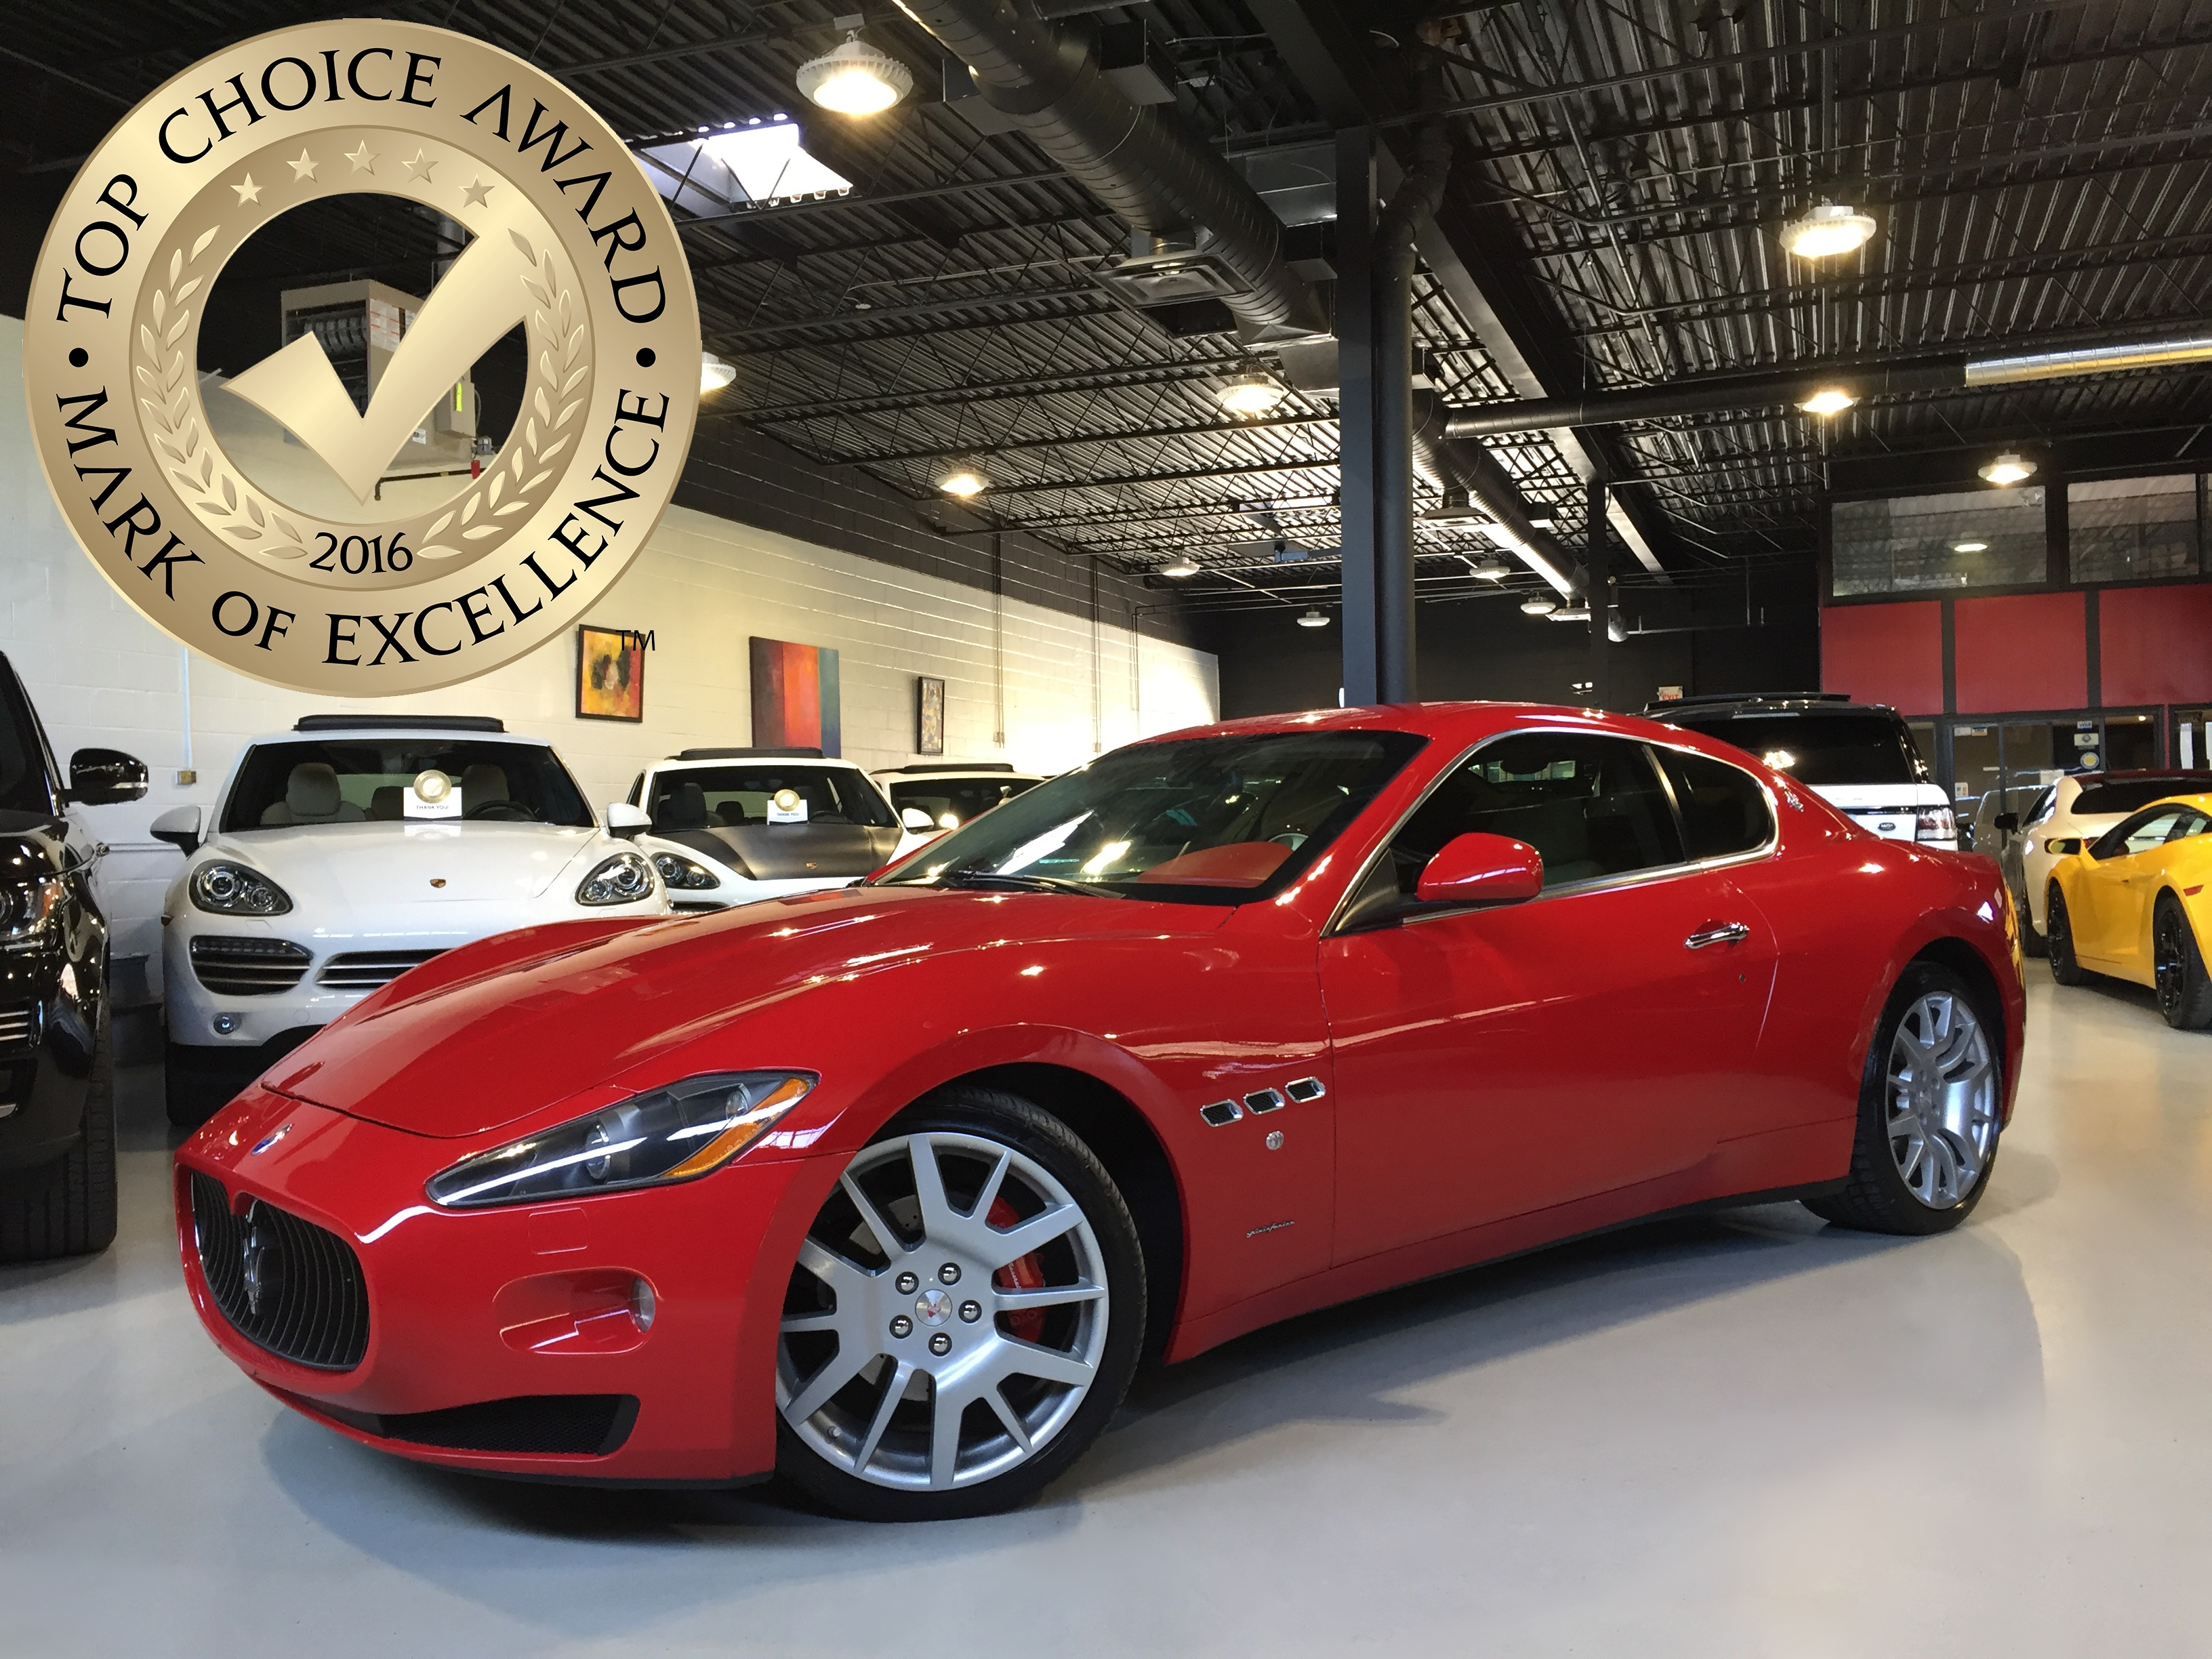 PARAMOUNT FINE CARS   Vehicles for sale in Toronto, ON M3J 2C2